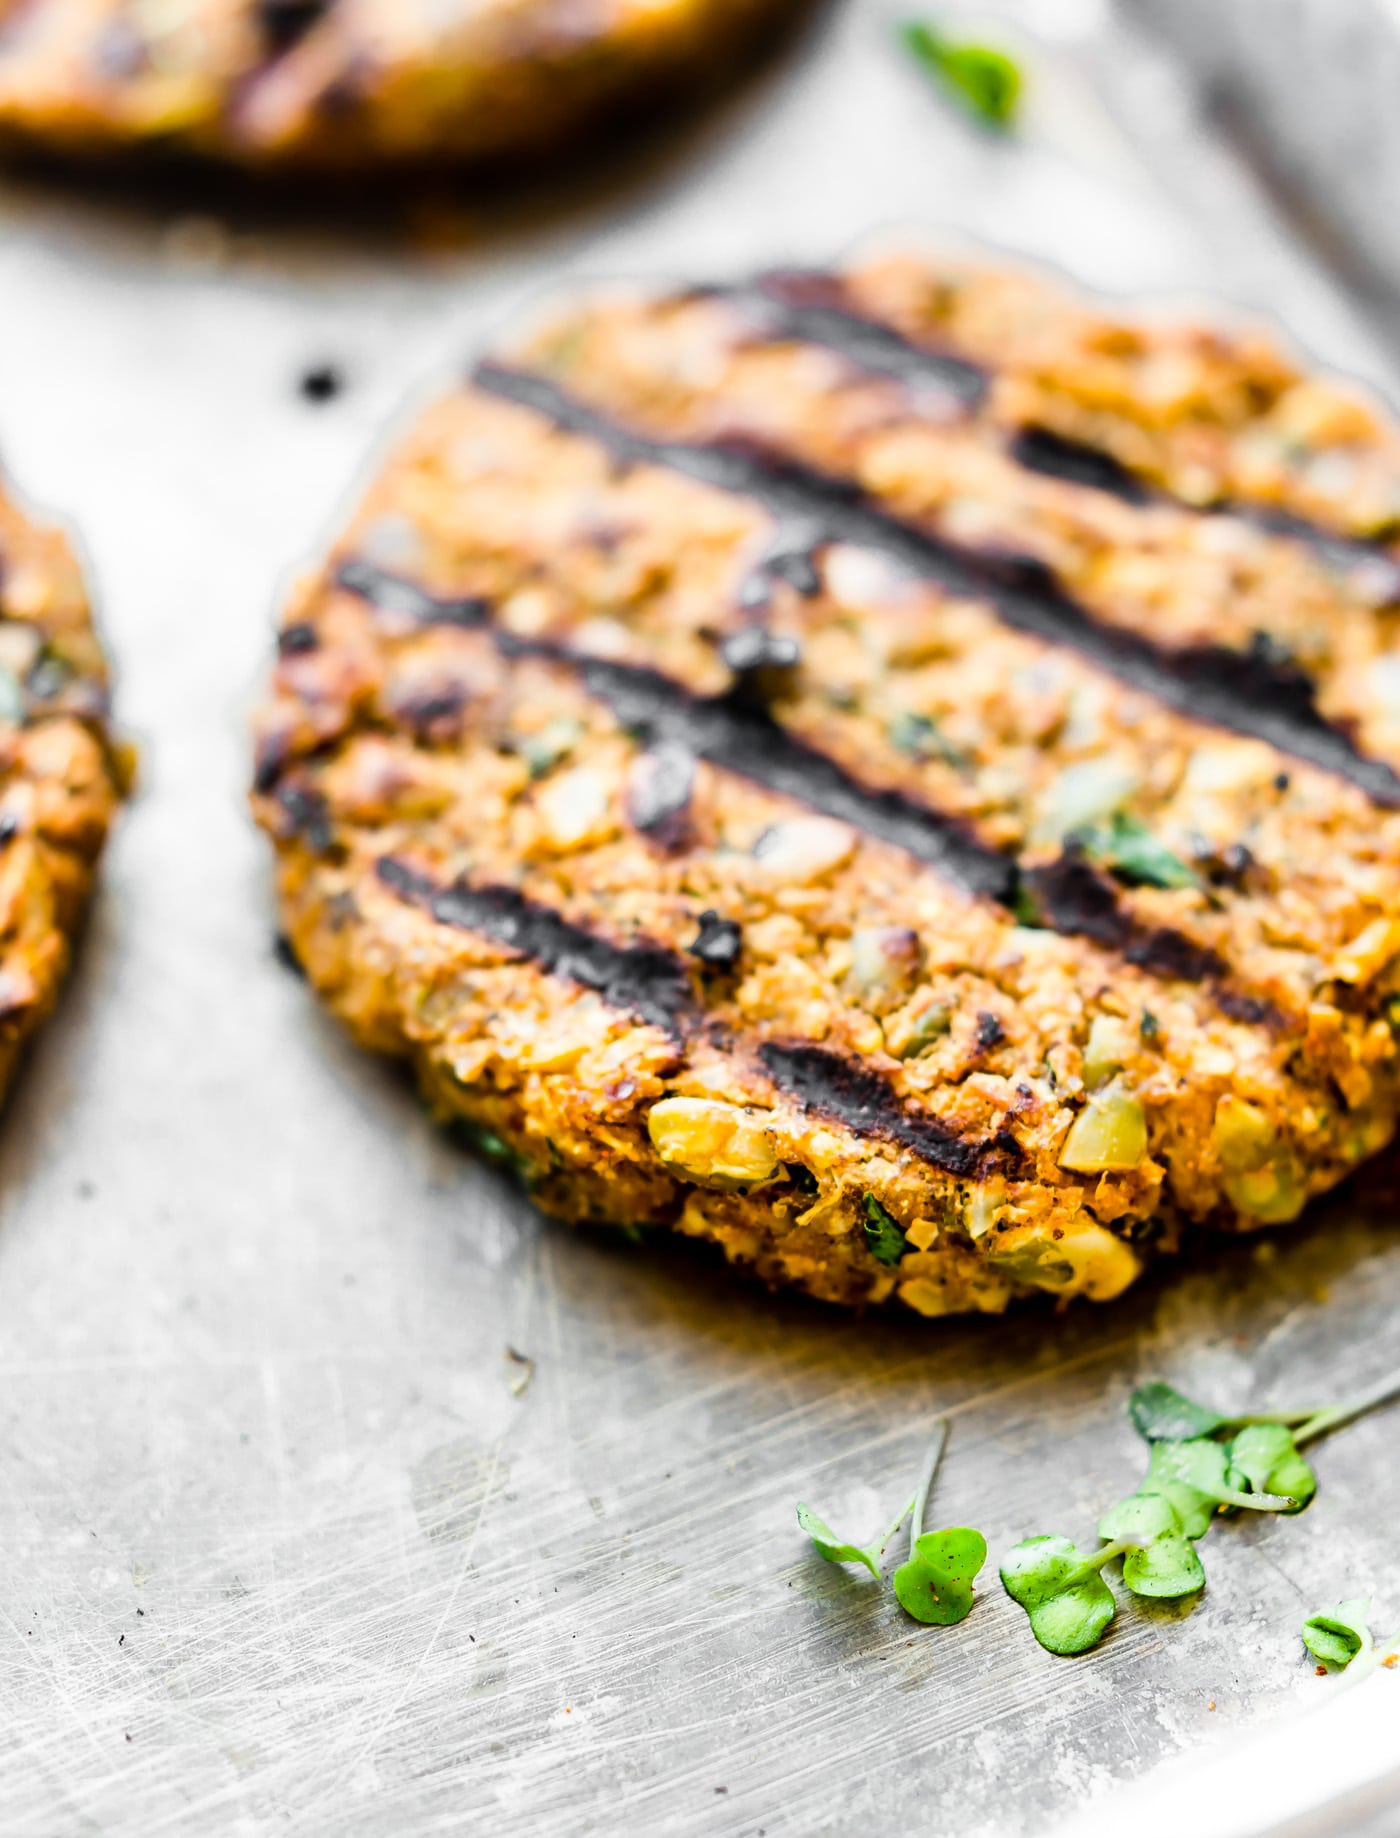 Grilled Moroccan Cauliflower Chickpea Burgers! Flavorful veggie-packed chickpea burgers made with plant based ingredients and served on gluten free hamburger buns! This is one killer gluten free veggie burger recipe you can make on the grill or in the oven! Moroccan spices mixed with cauliflower and chickpeas make these burgers to die for! Delicious, simple, healthy, and easy!